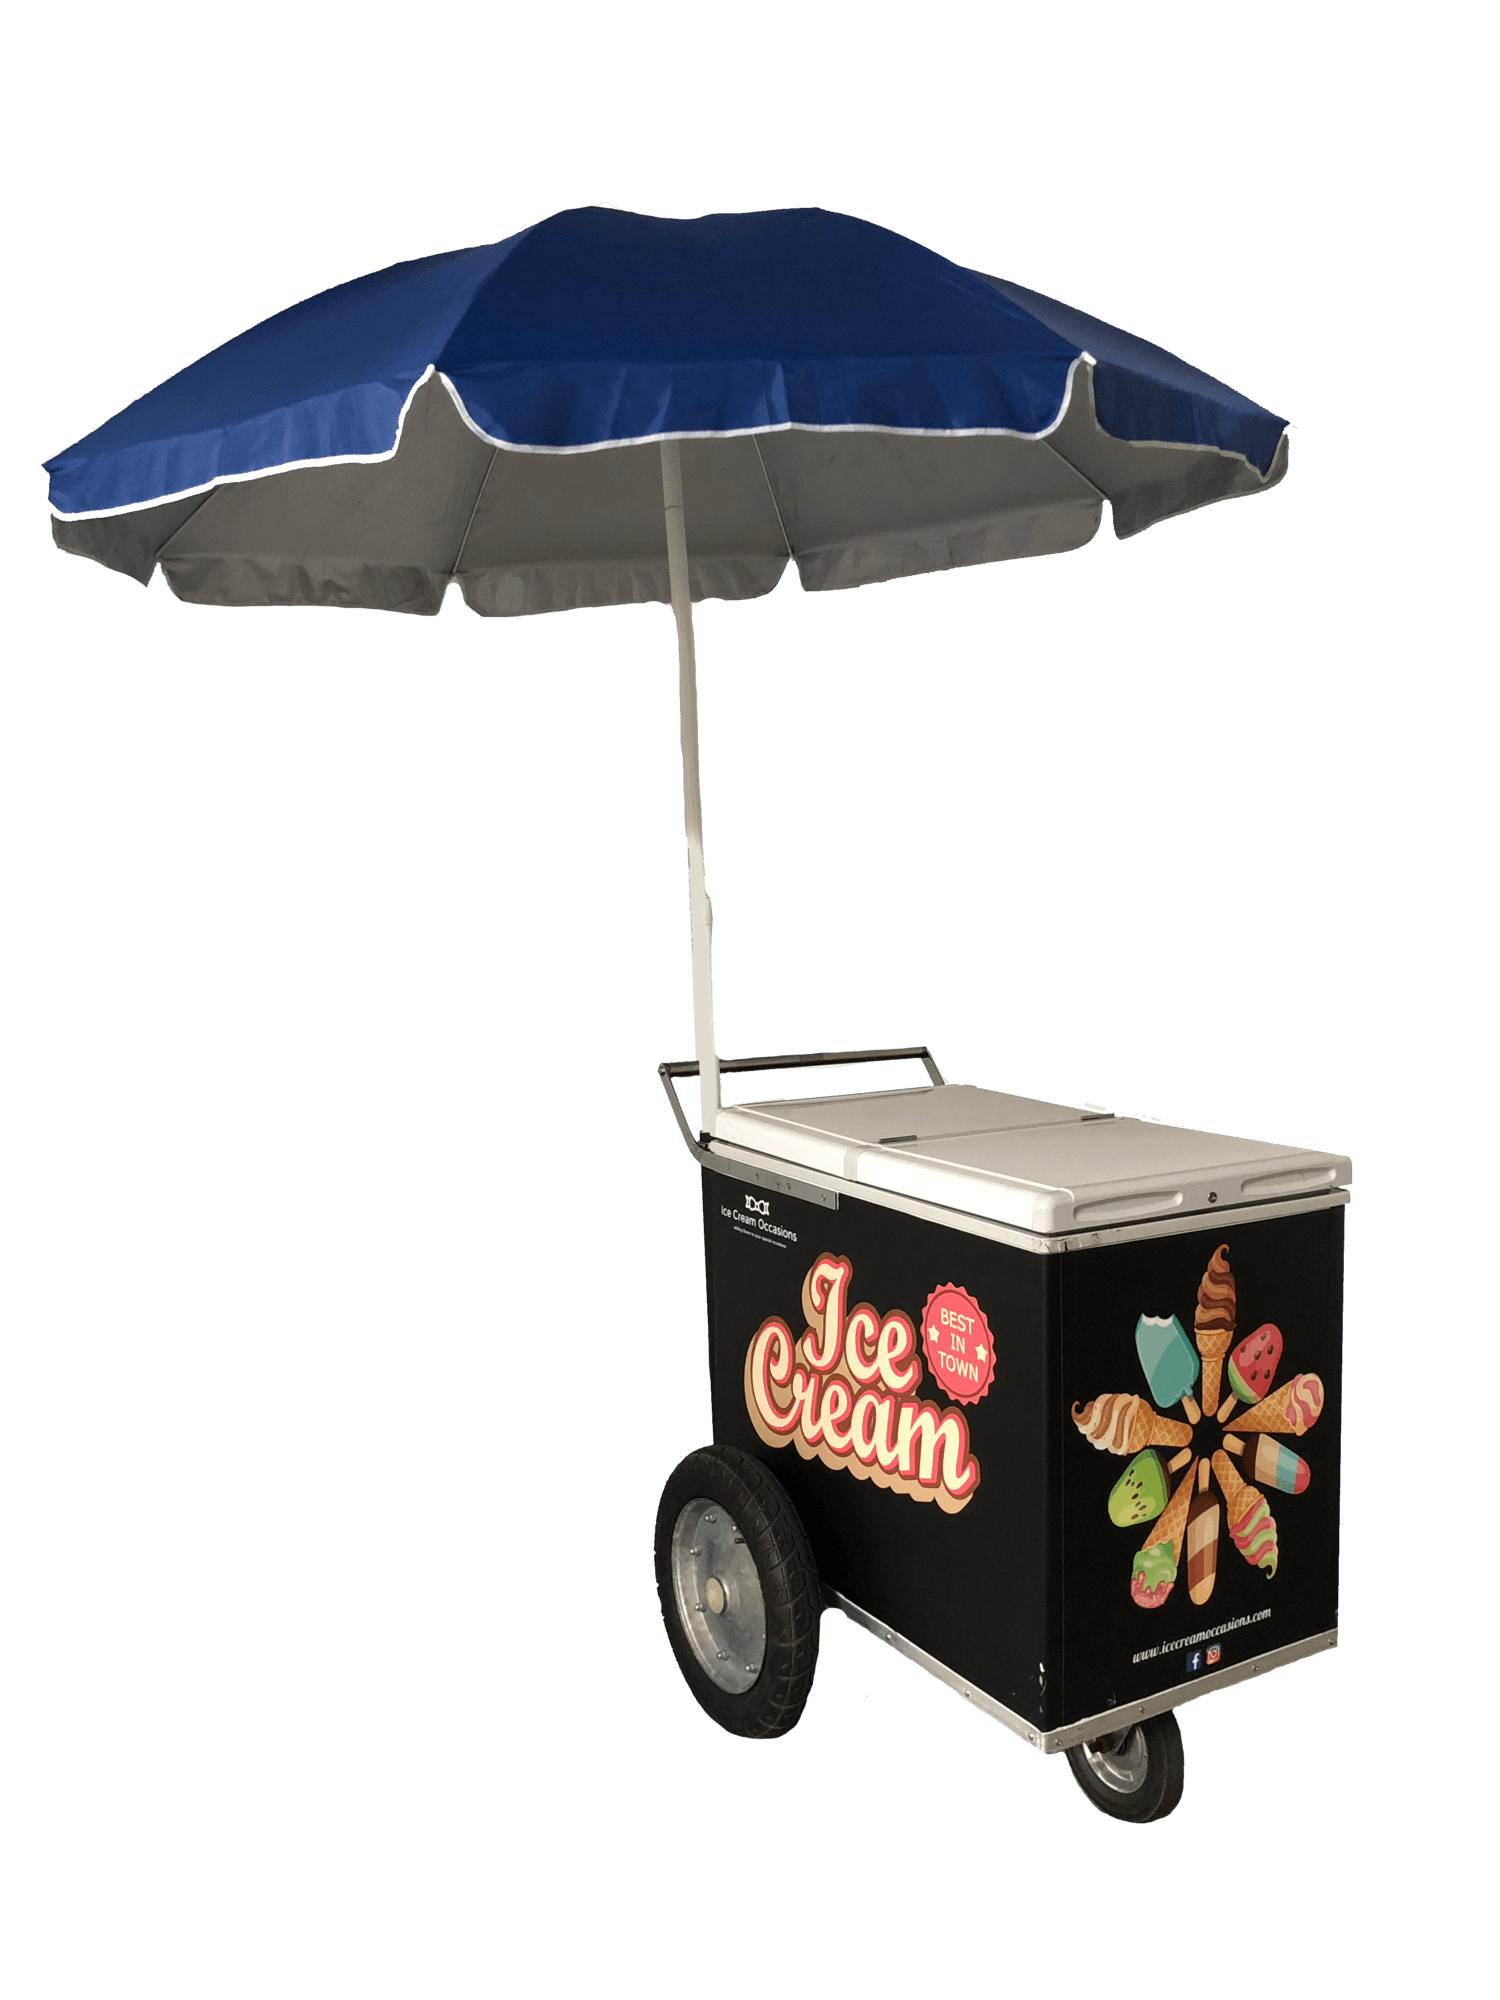 Ice Cream Cart Rental & Catering - Rent an ice cream cart for your party or event. Our ice cream cart rental service is a favorite among So Cal customers and we have a large selection of ice cream carts for rent. Our standard carts come in white and black and are available for rent starting at $349 and this includes delivery (Free within service area), Pickup, and 70 FREE pieces of your choice of ice cream. Am umbrella for outdoors and everything you need to keep things ice-cold is included at no additional charge. Rent your ice cream cart and choose your ice cream from one of the largest selections around.